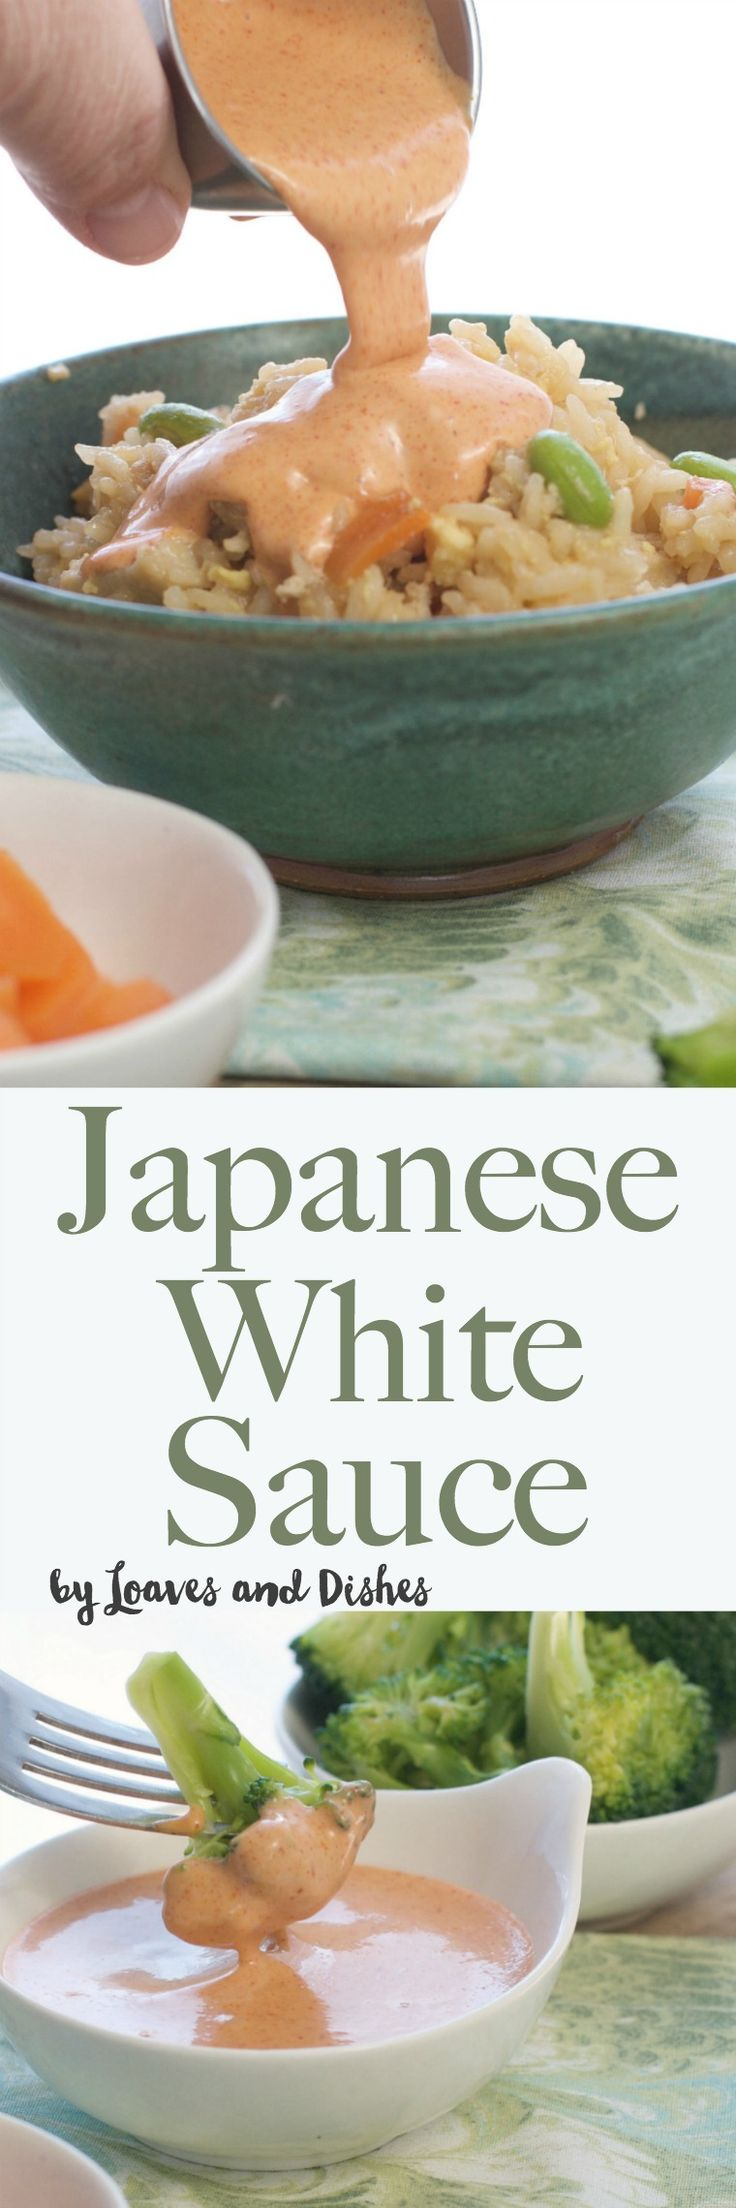 The recipe for the famous Japanese White Sauce served in Japanese Steak Houses!  Yum Yum Sauce, Benihana Sauce, Shrimp Sauce - you know it by many names.  Homemade with garlic powder.  Perfect over stir fry rice and vegetables!